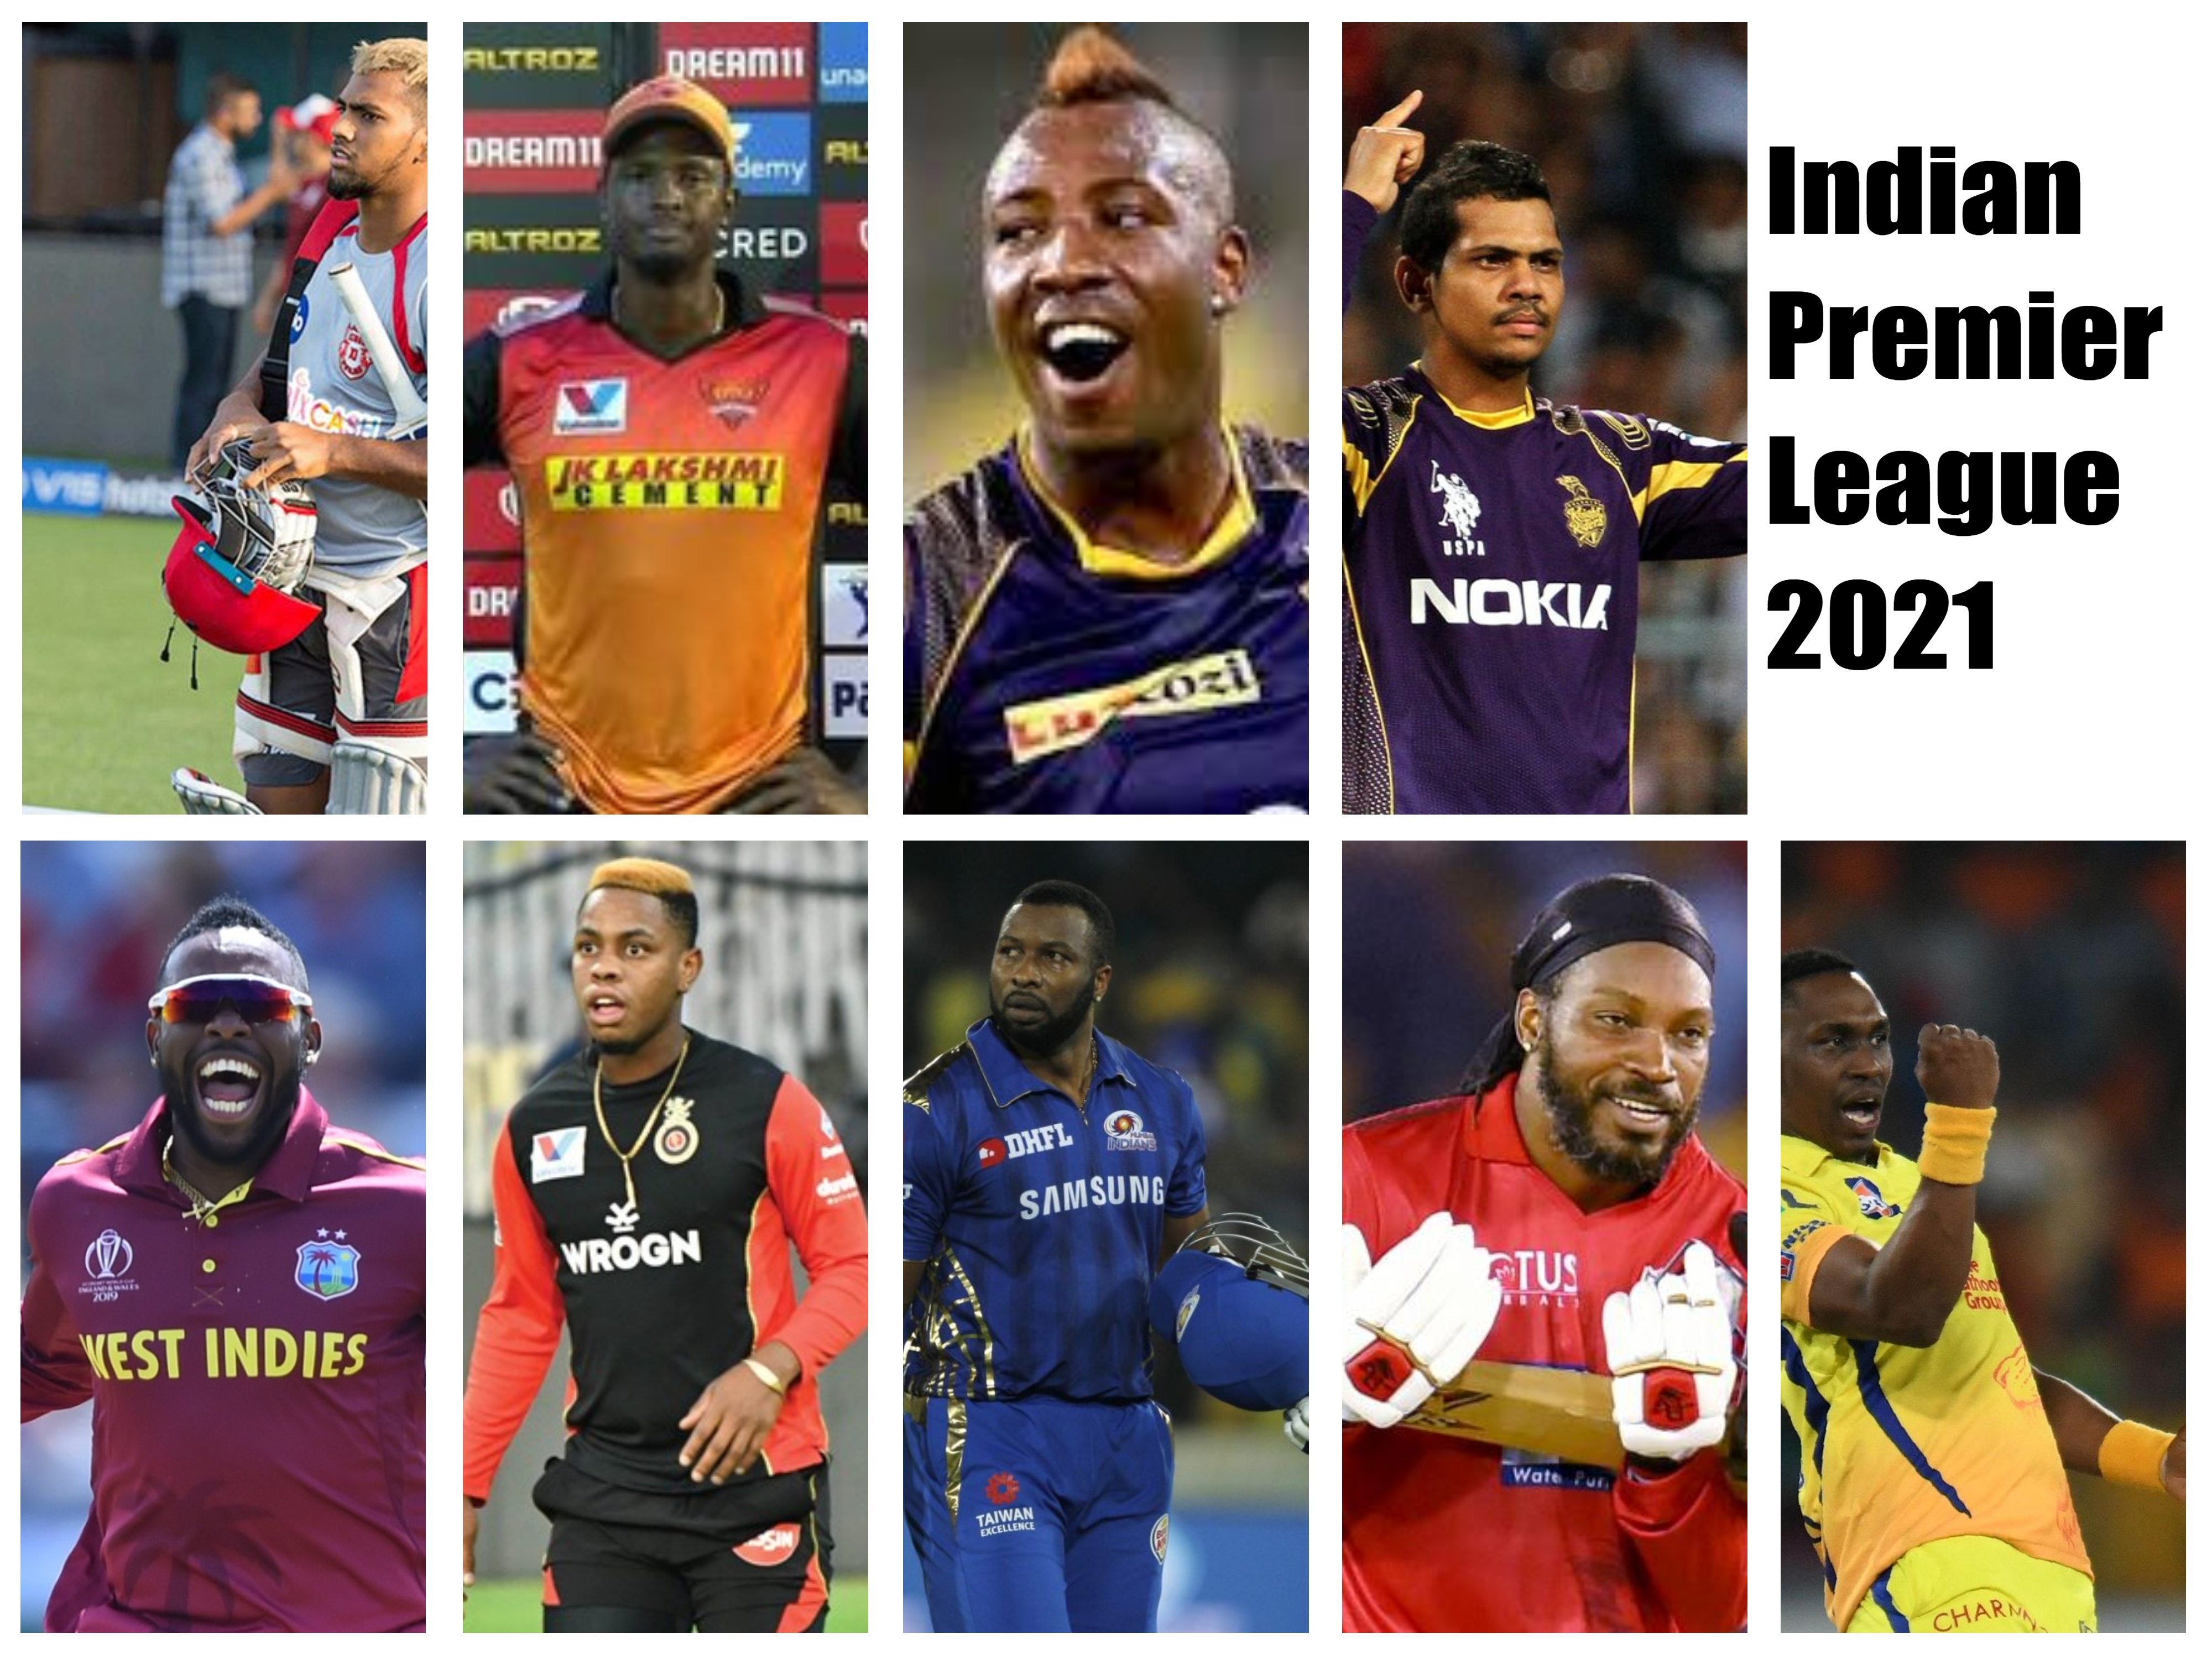 West Indies Players in IPL 2021